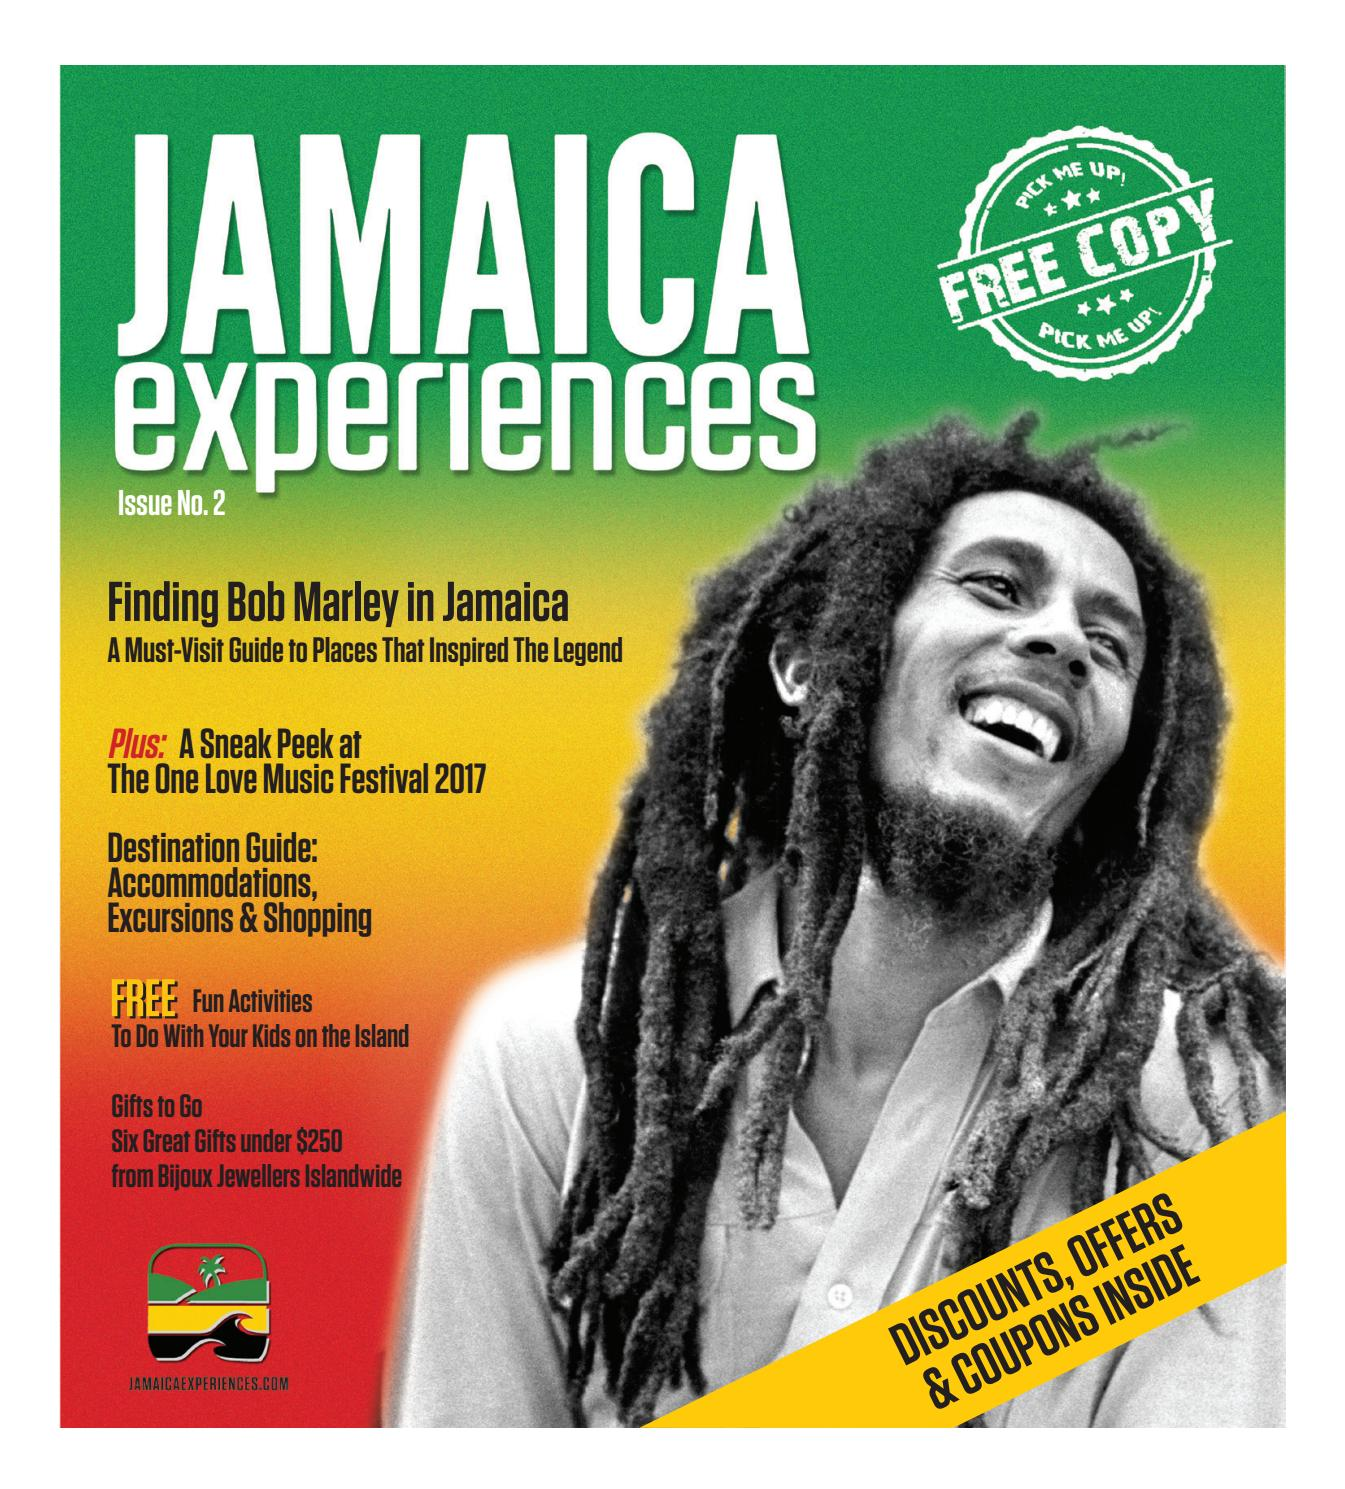 Jamaica Experiences Newspaper Issue 2 By Jamaicaexperiences Issuu